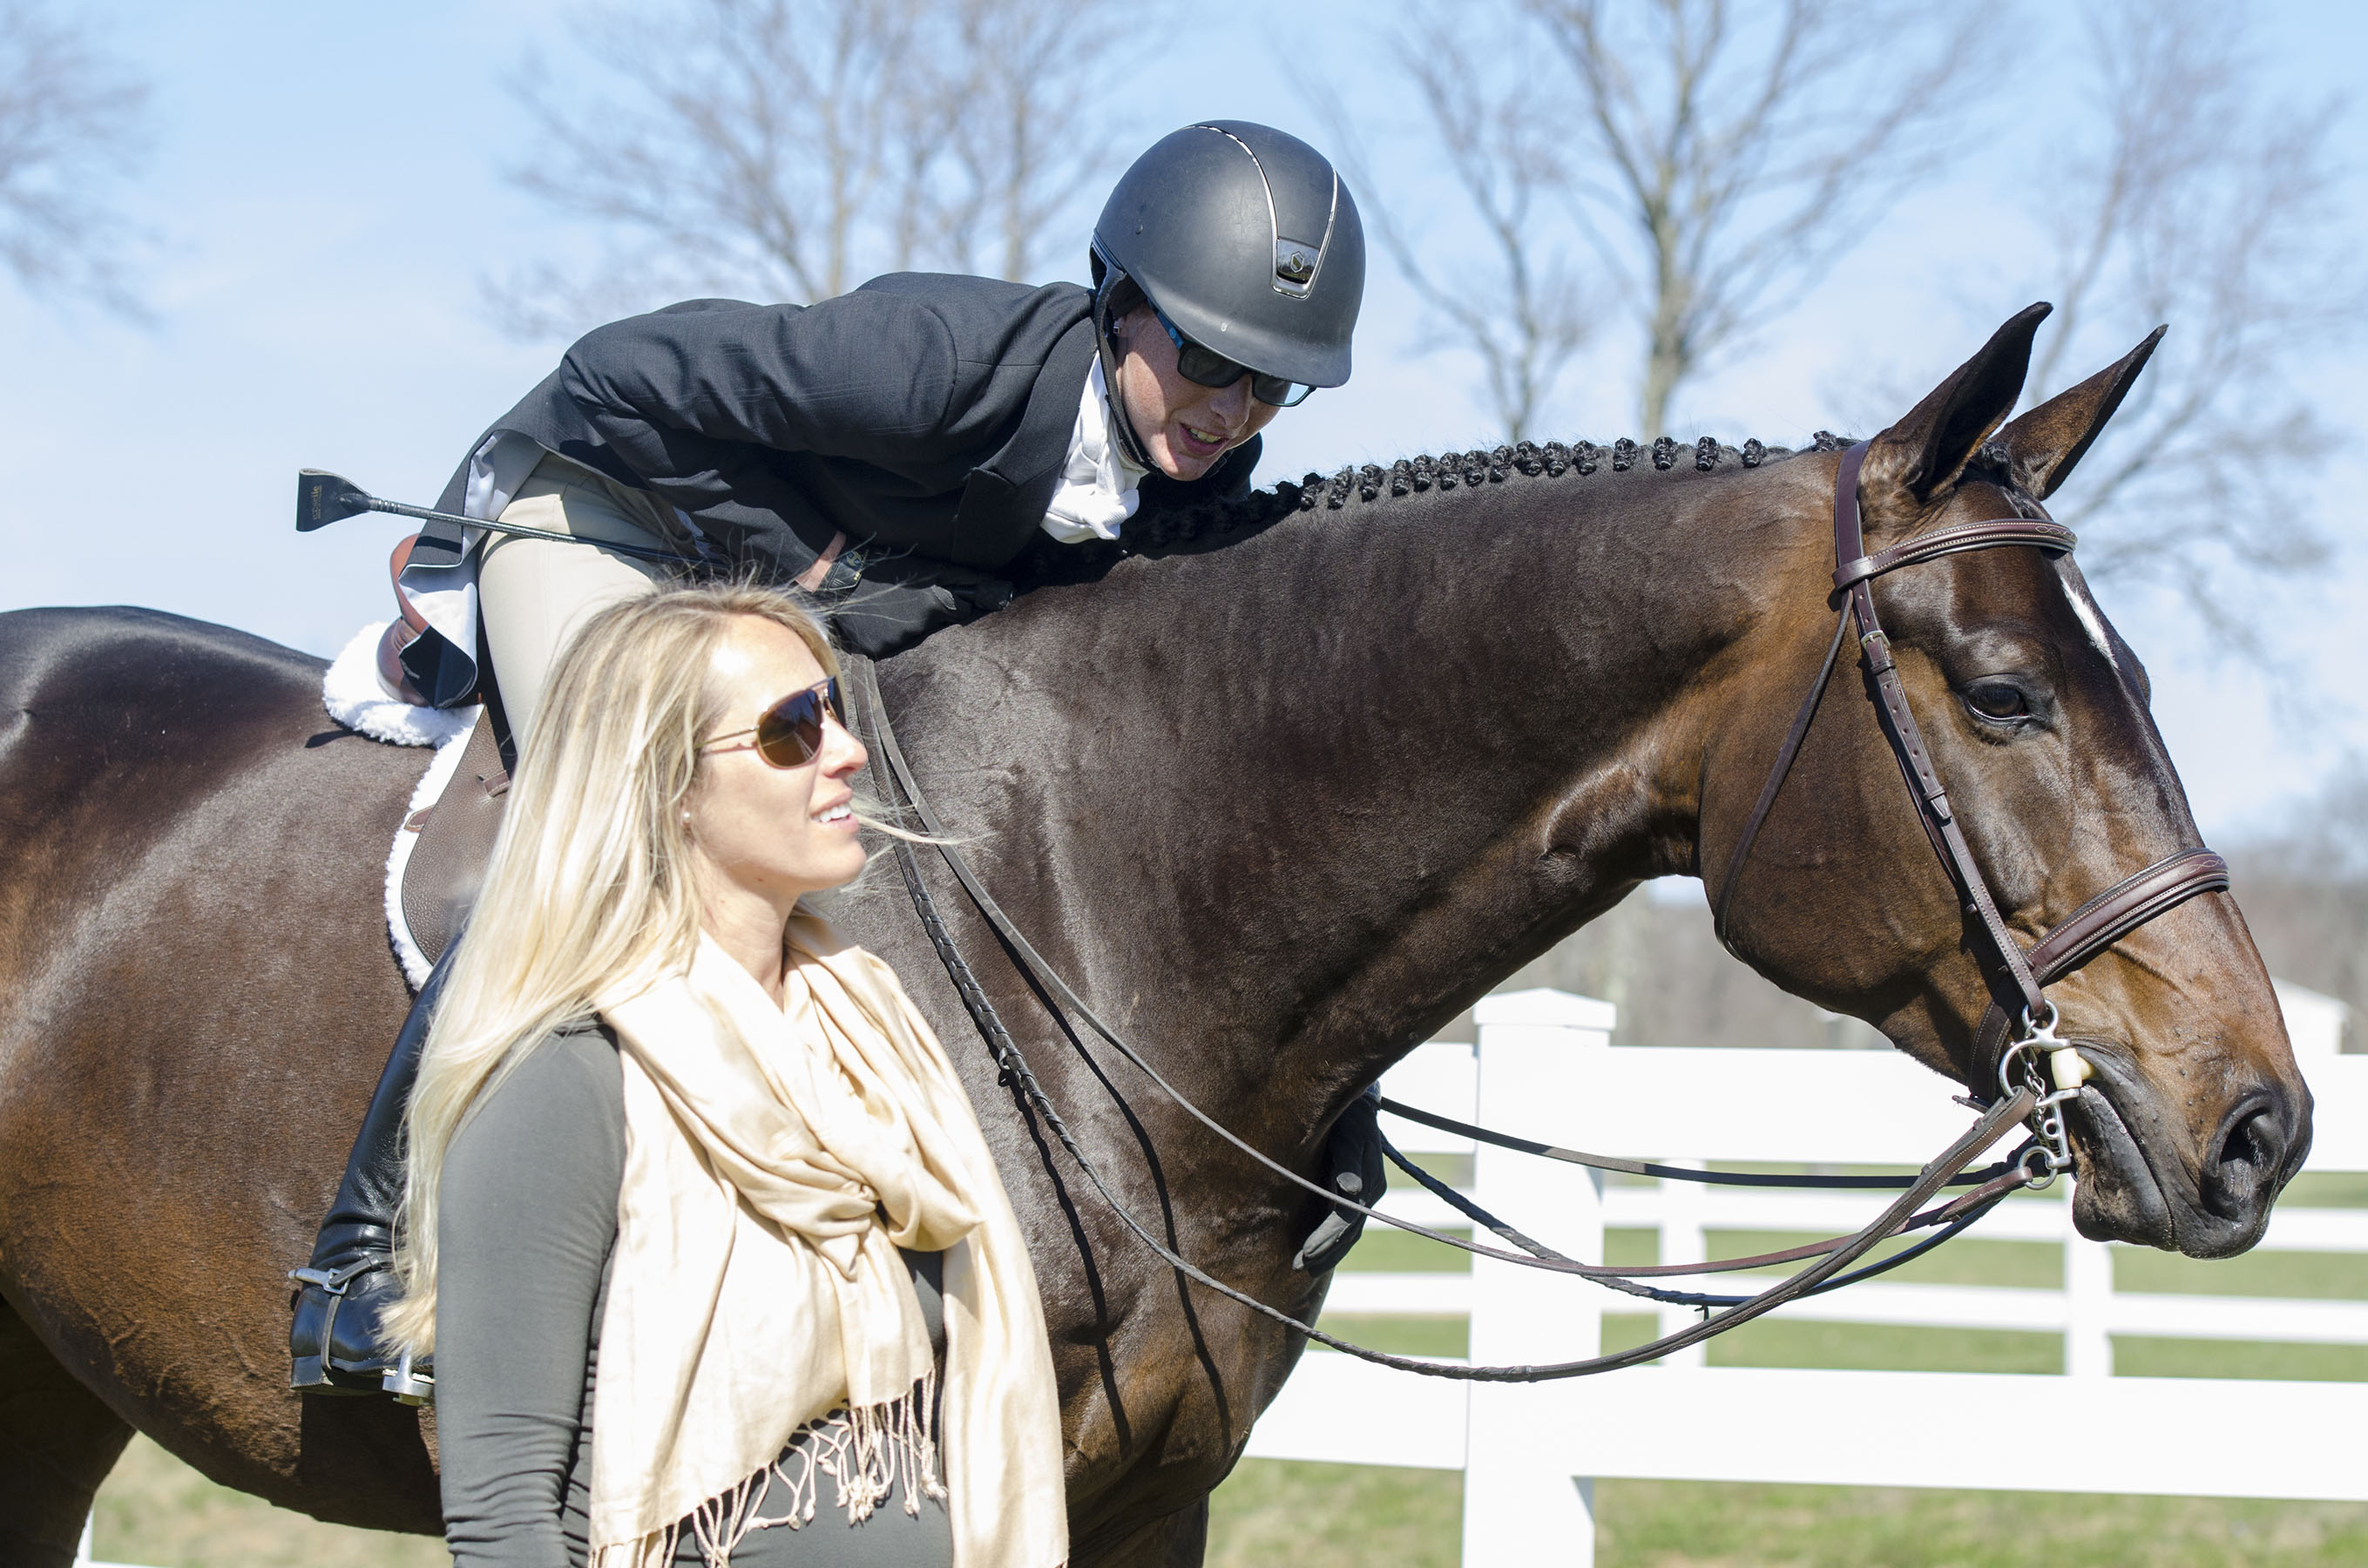 Revisit The Anrc With The Equestrian Team Scad District